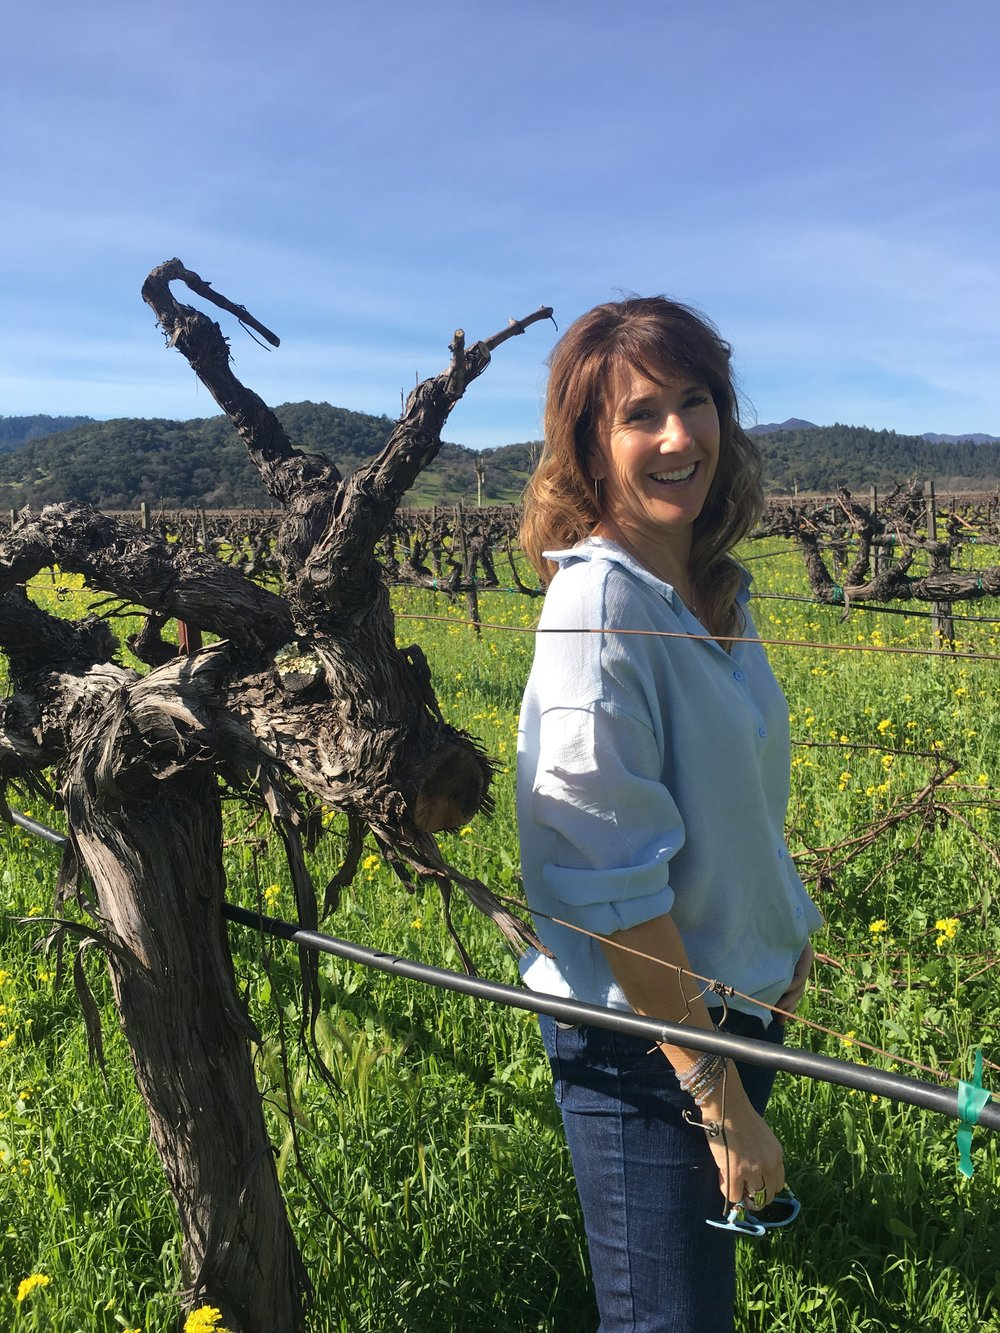 Co-founder LIzann Grupalo in NapaValley_Stags Leap District vineyard.jpeg